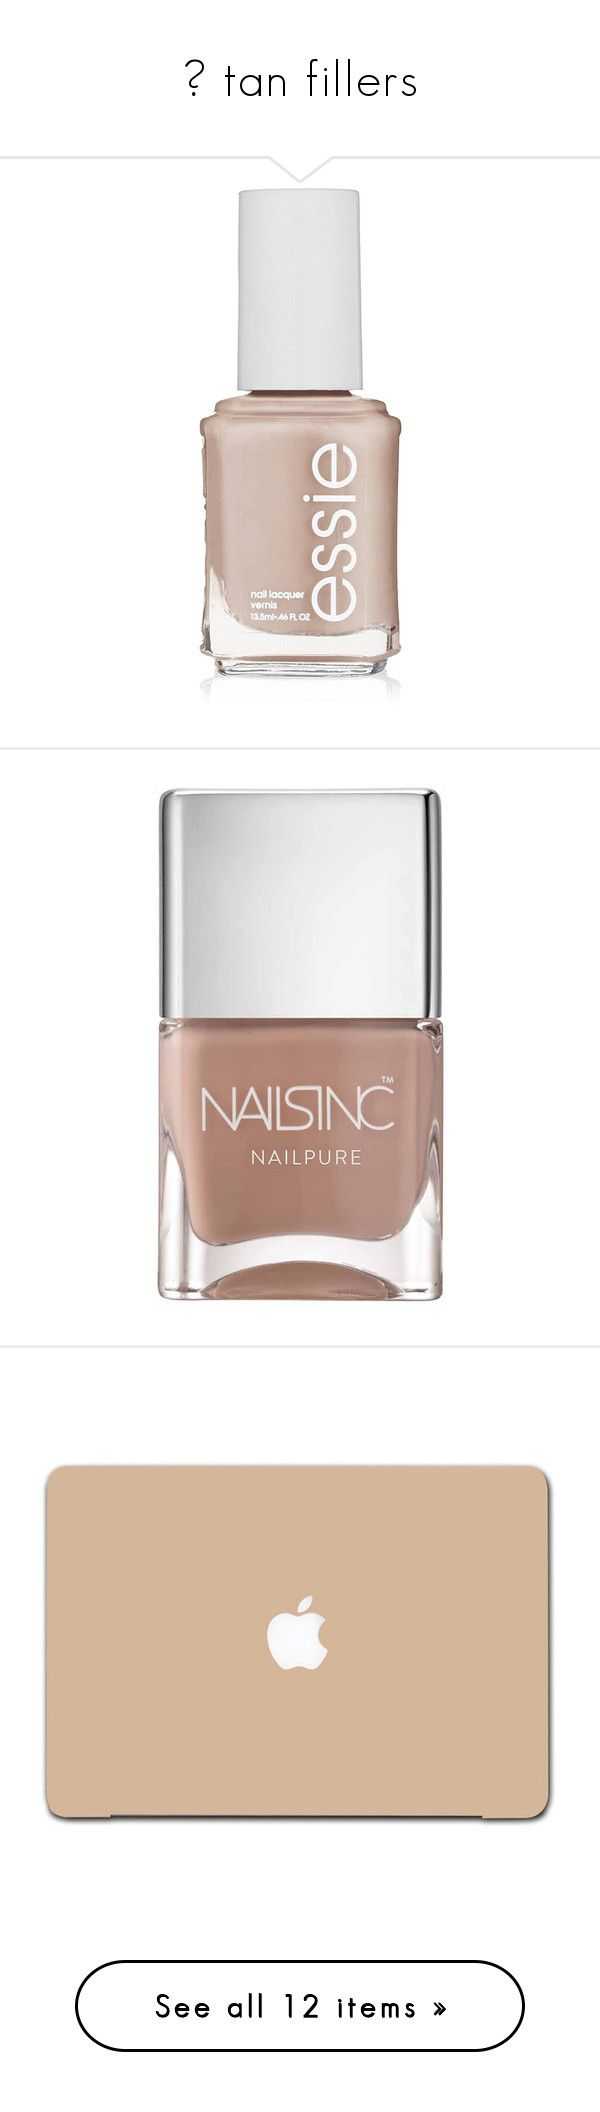 """♡ tan fillers"" by s-erene ❤ liked on Polyvore featuring beauty products, nail care, nail polish, nails, beauty, makeup, filler, nails inc., nails inc nail polish and shiny nail polish"